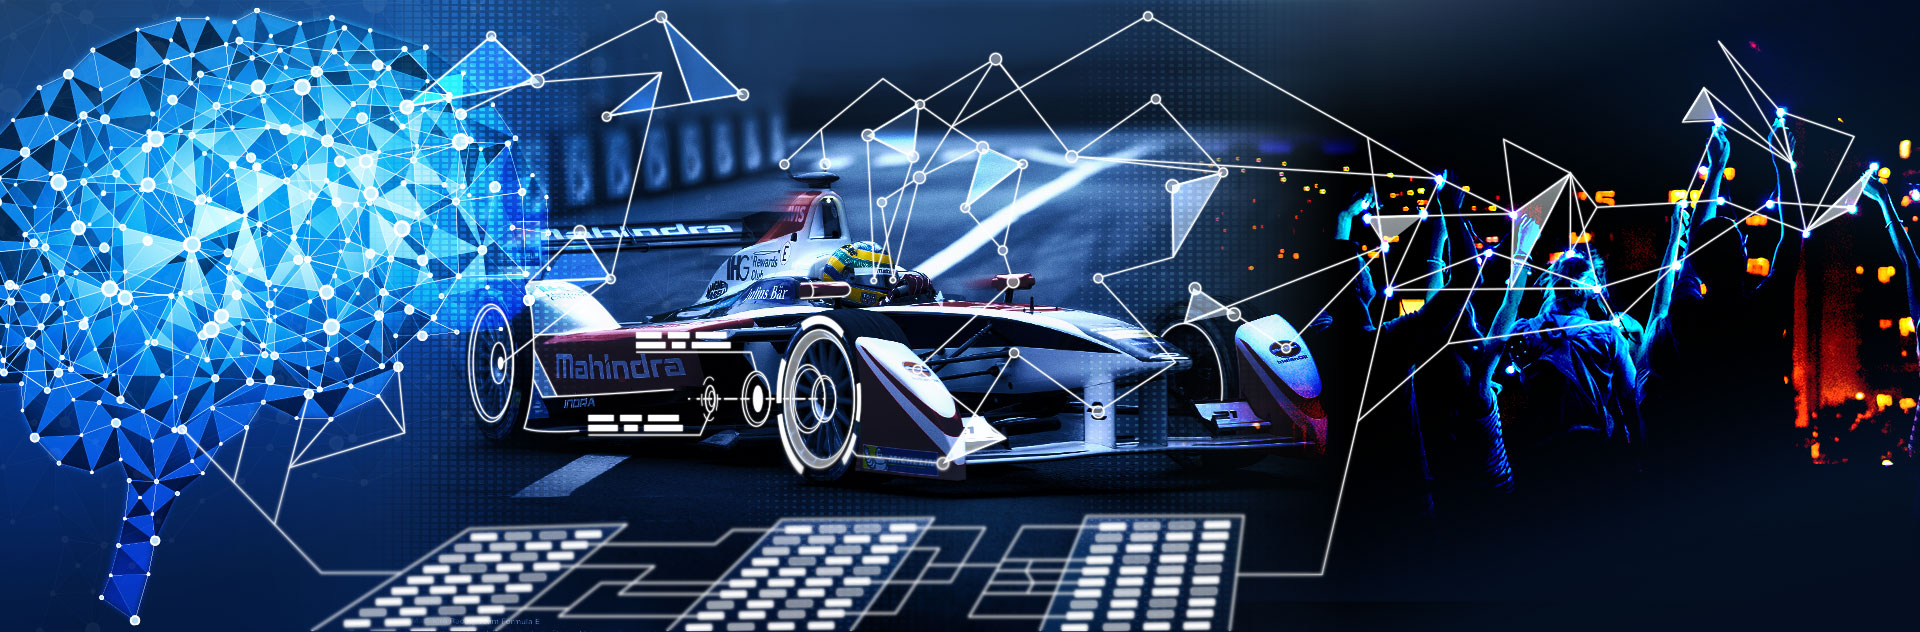 Artificial Intelligence and Motorsport: how technologies could improve fans' experience